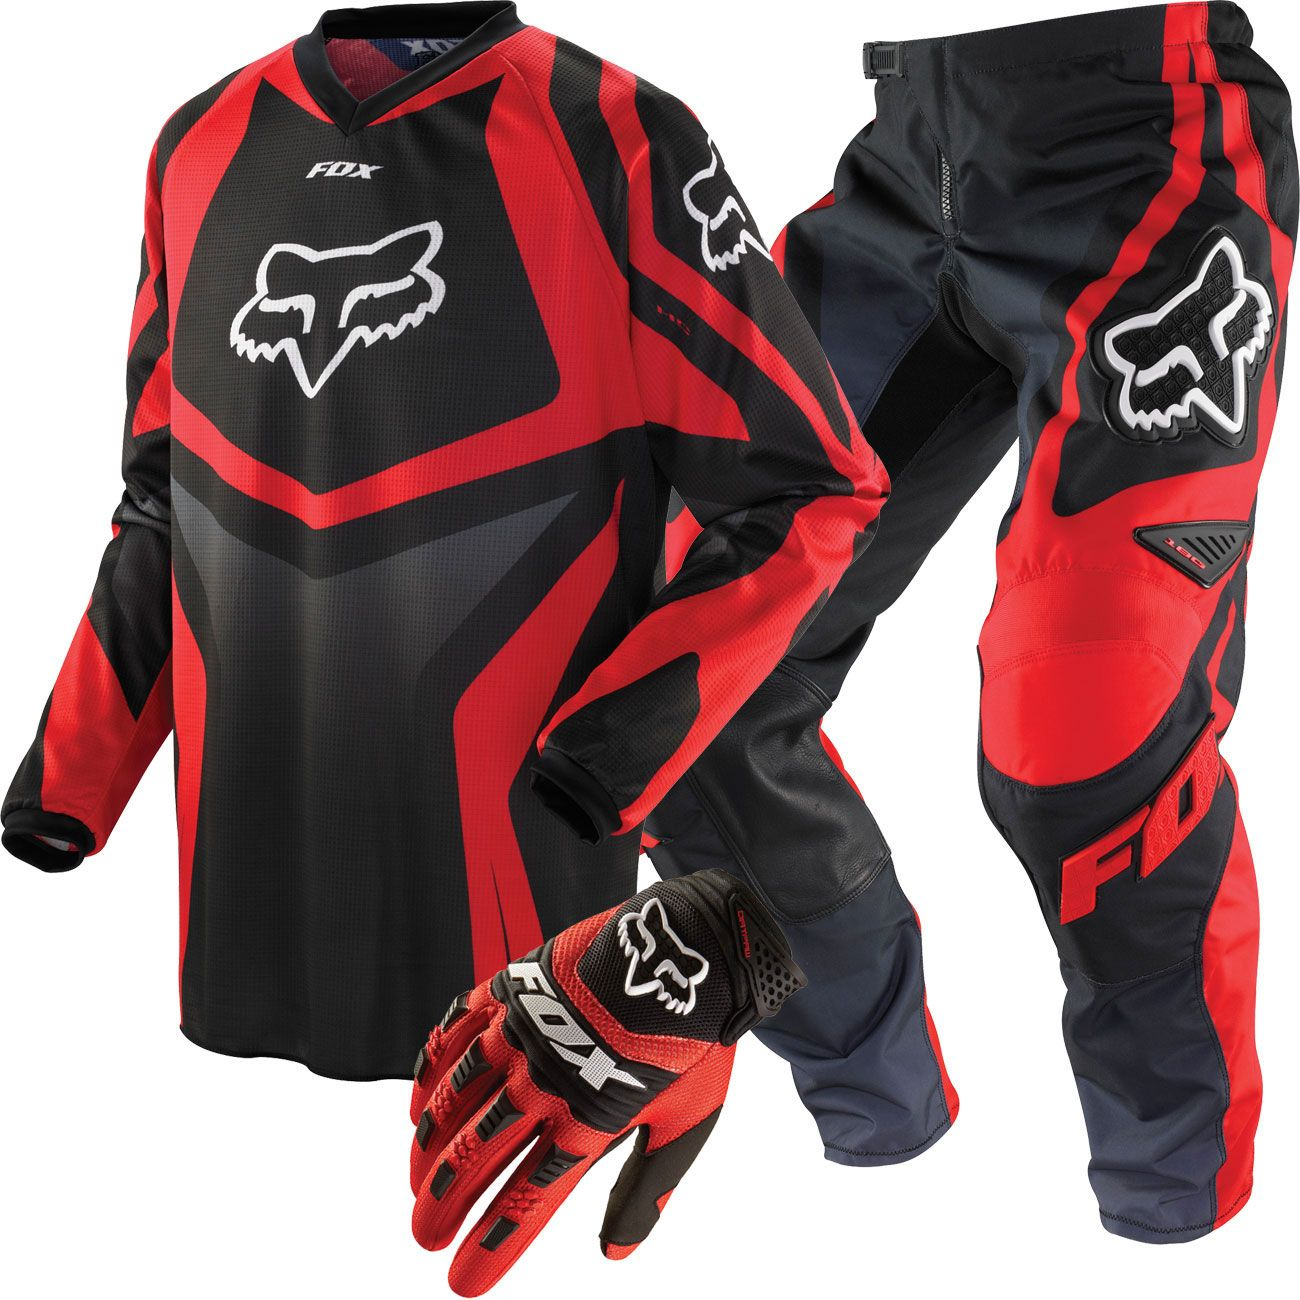 9a9bd341b96 Fox Racing HC 180 Race Youth Package Deal...Black and Red